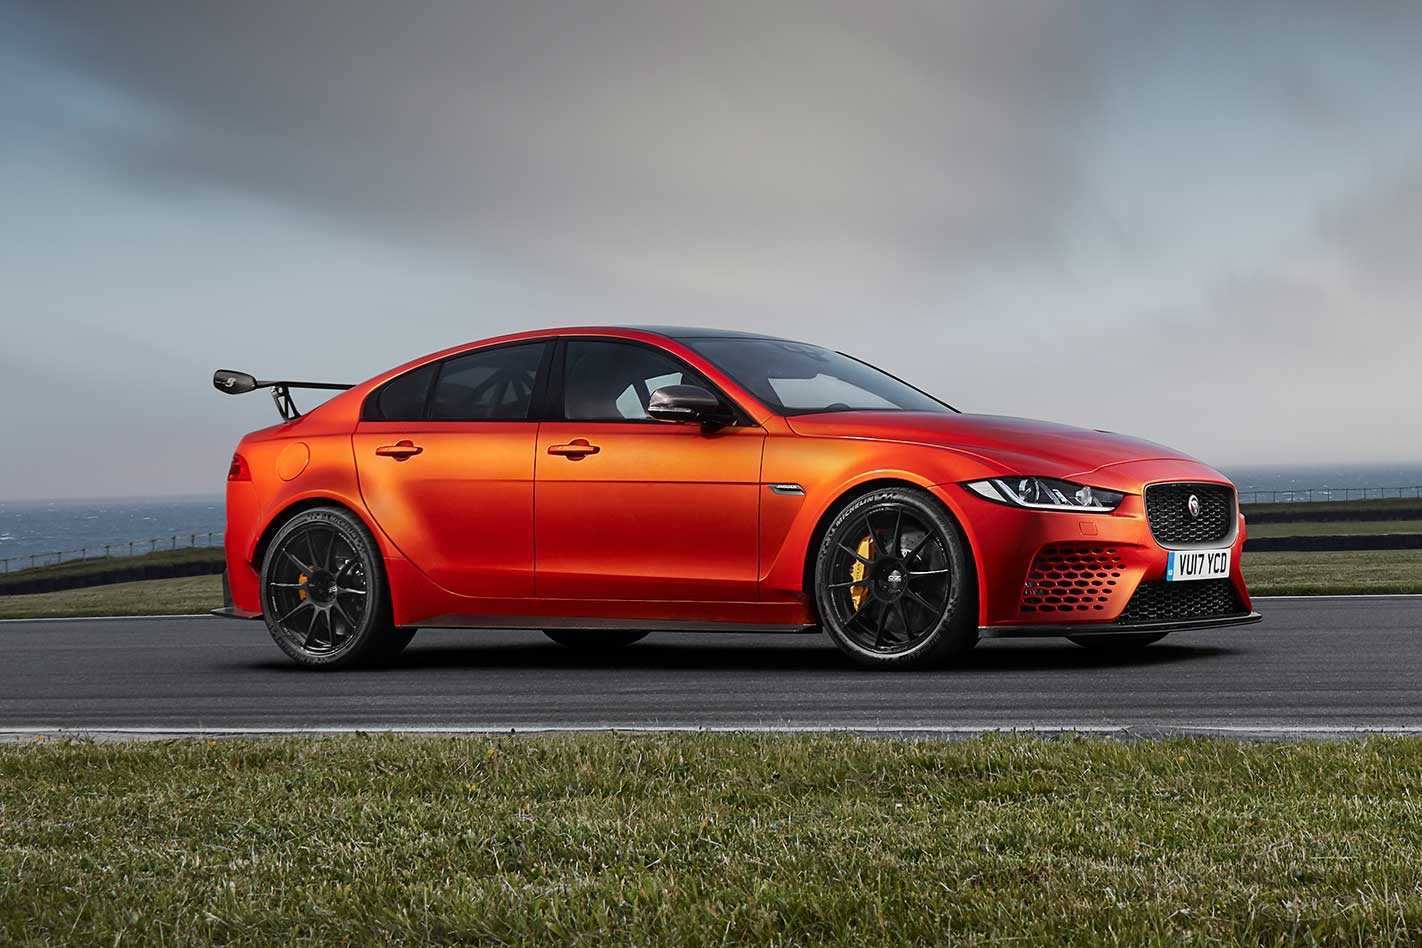 87 The 2019 Jaguar Project 8 Review And Release Date